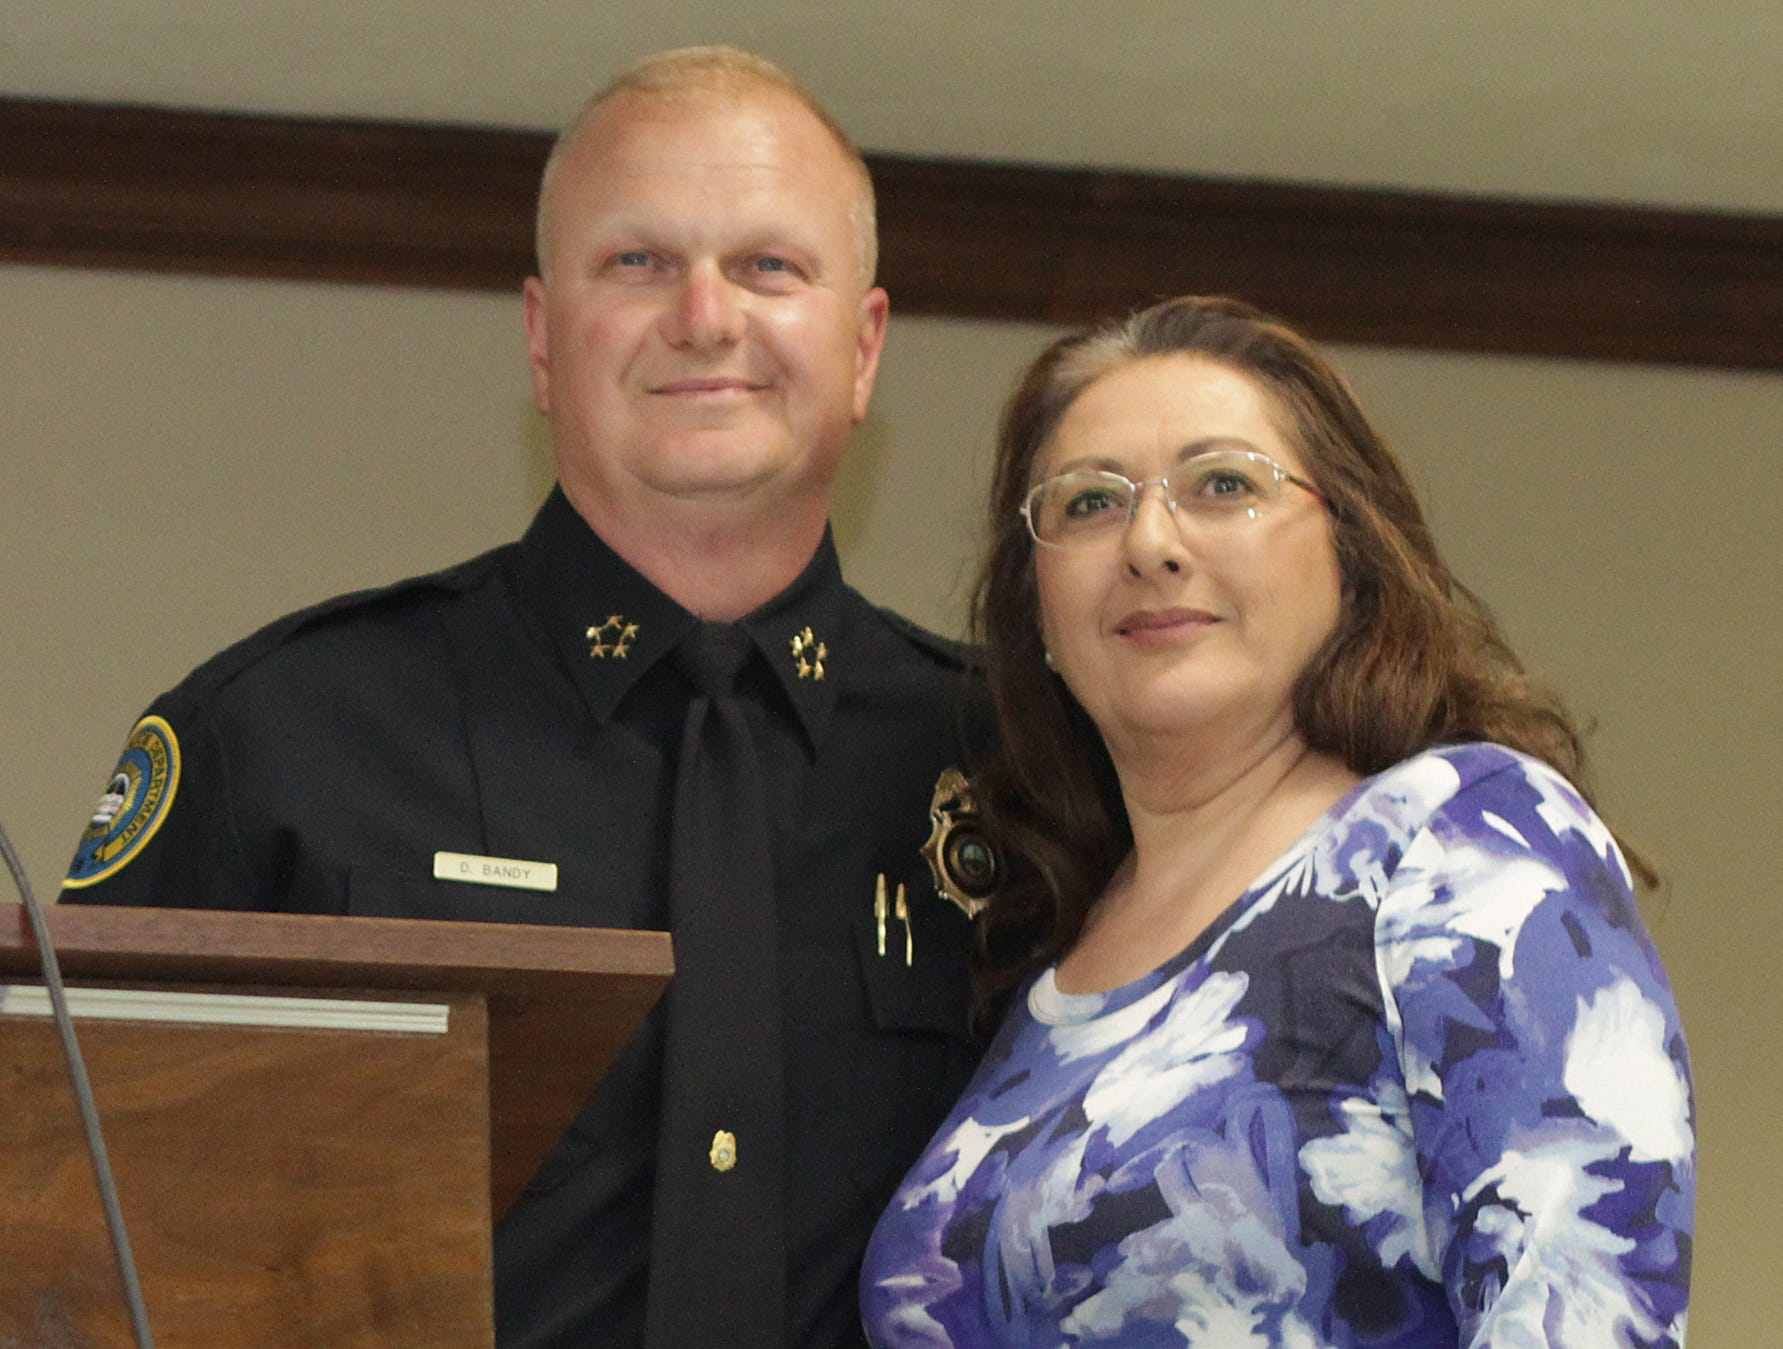 Chief Donald Bandy presents a Meritorious Service Award to Jamie Sullivan at the Gallatin Police Dept. Awards Ceremony for 2018 Achievements on Thursday, March 21, 2019.